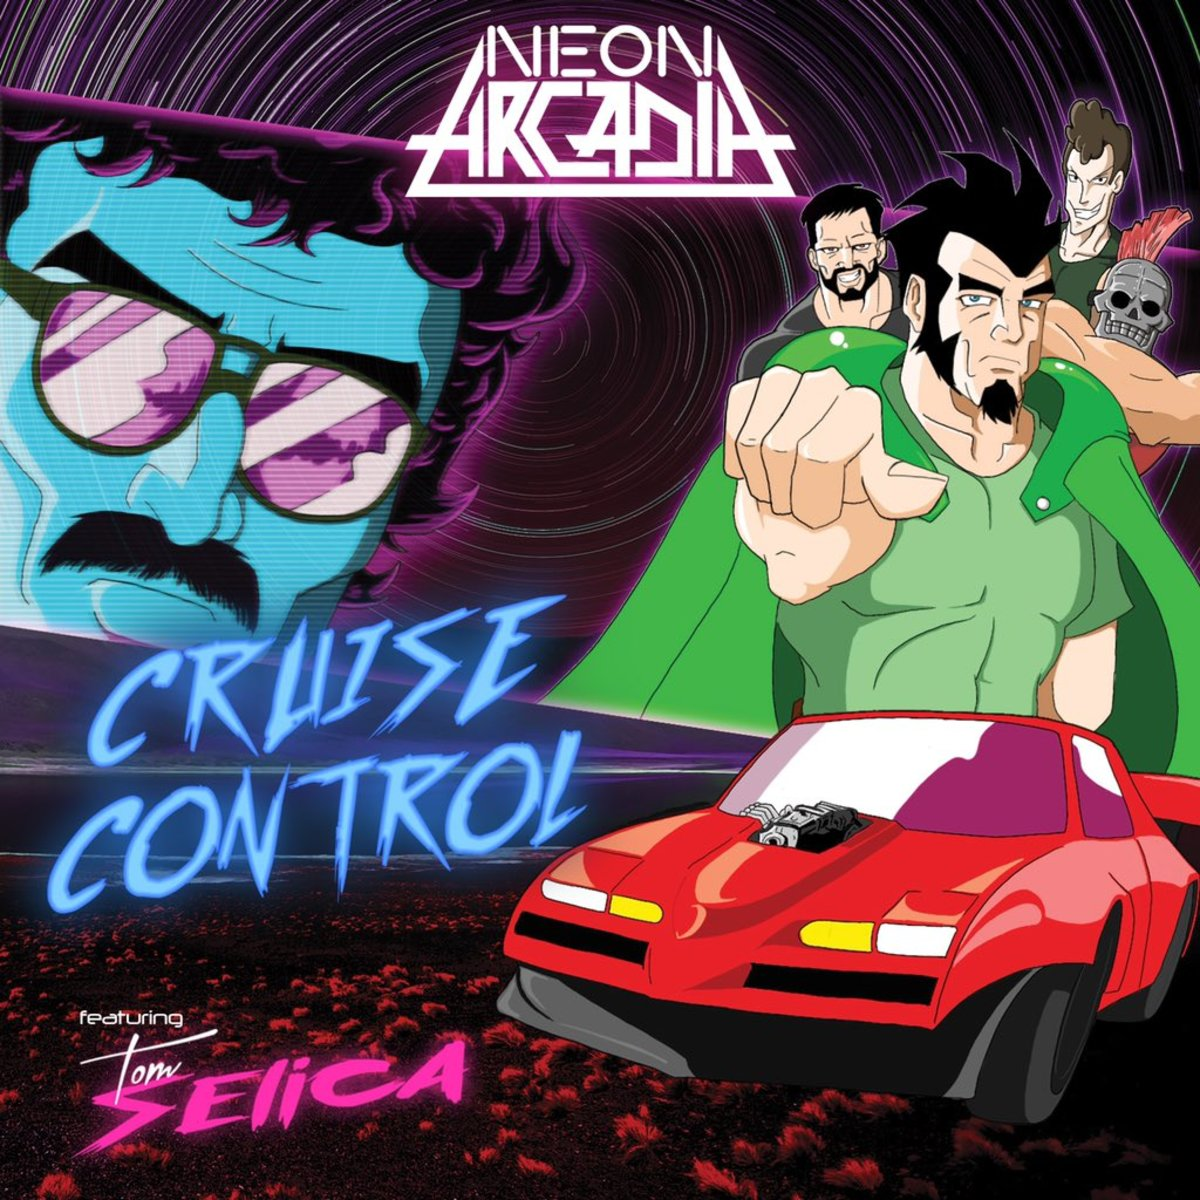 """Synthwave Single Review: """"Cruise Control"""" (Neon Arcadia feat. Tom Selica)"""